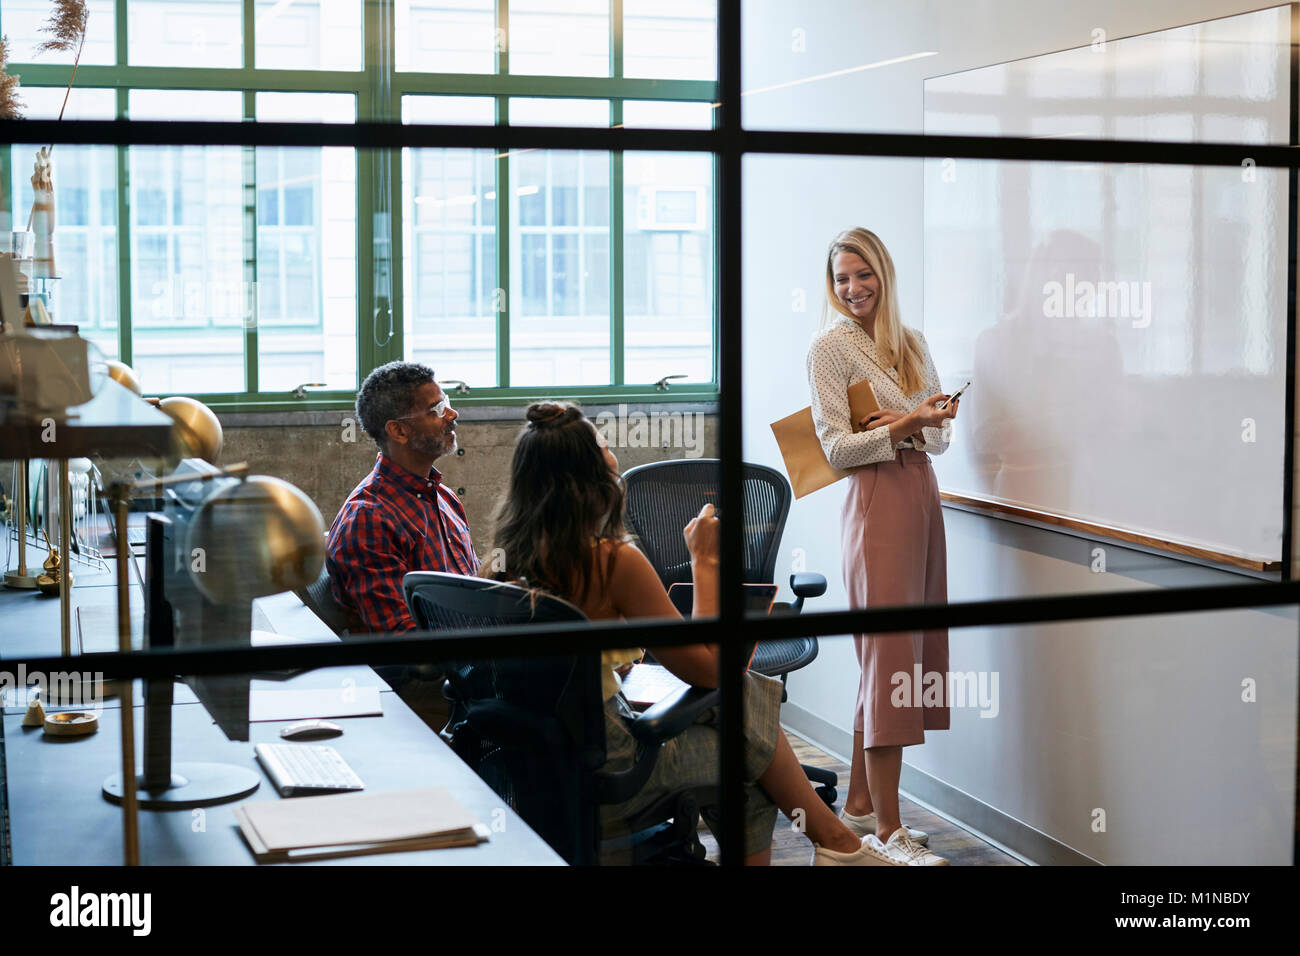 Woman at whiteboard in team meeting, seen through glass wall - Stock Image